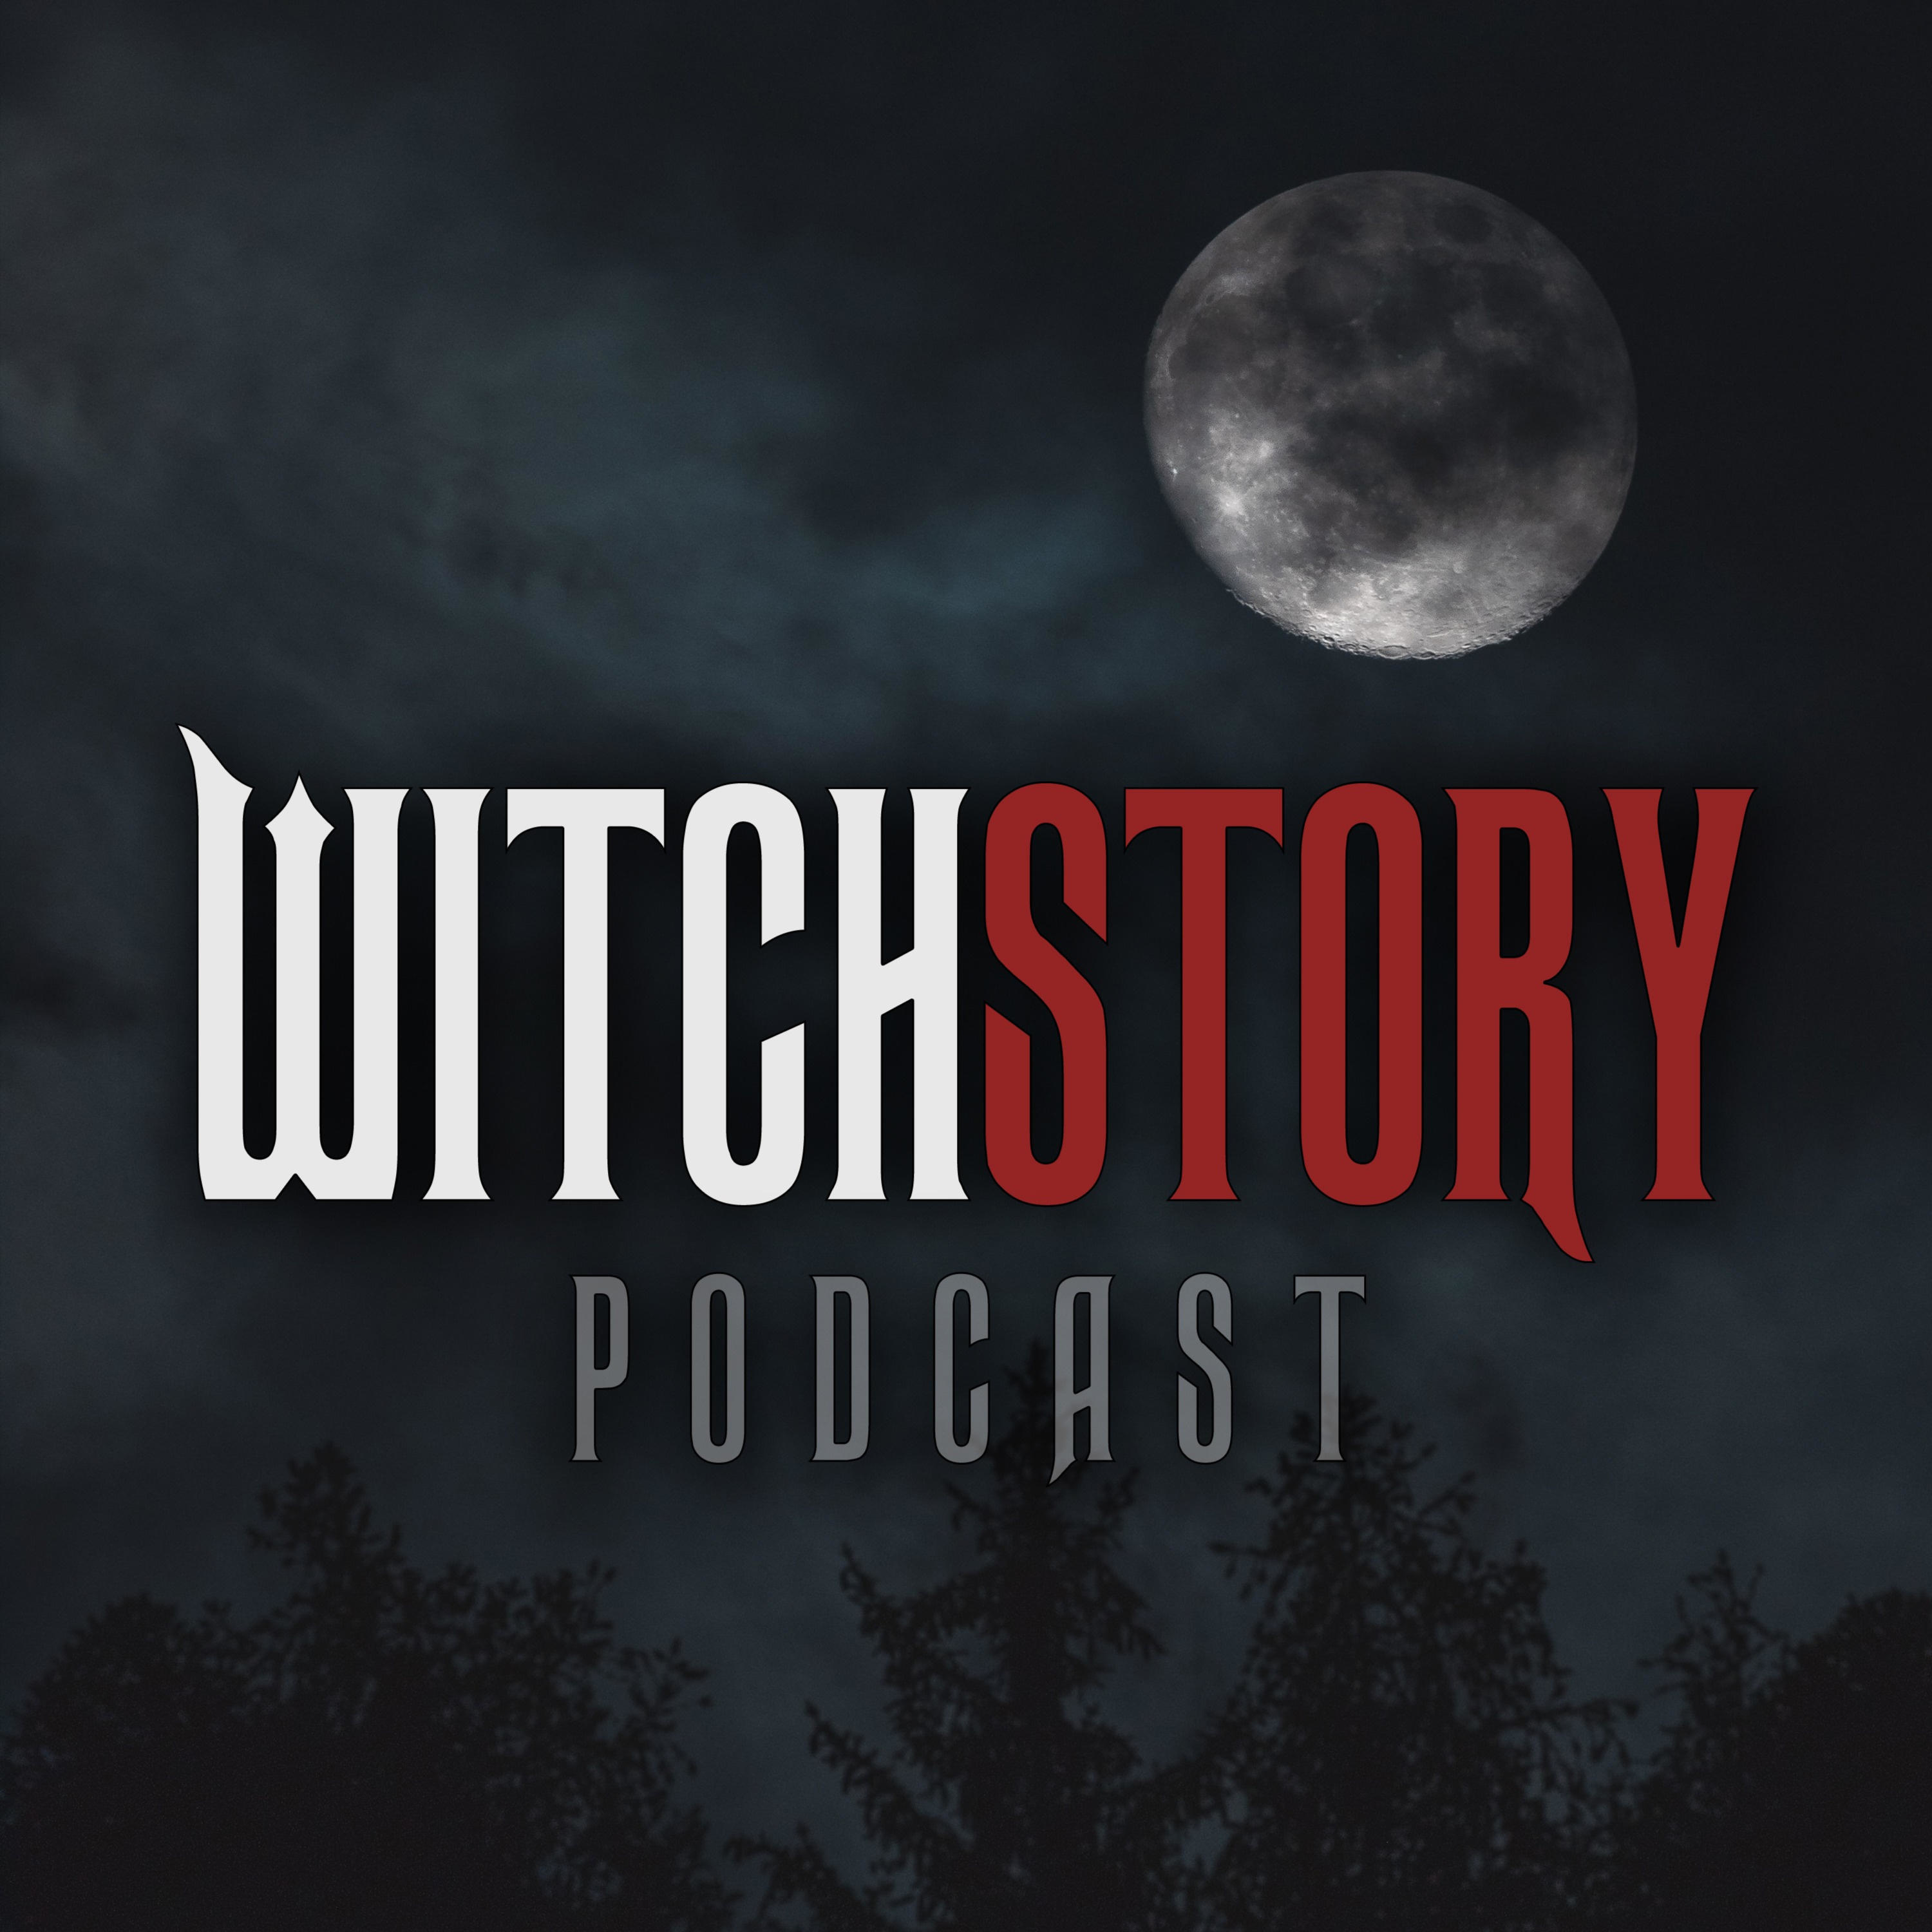 WitchStory